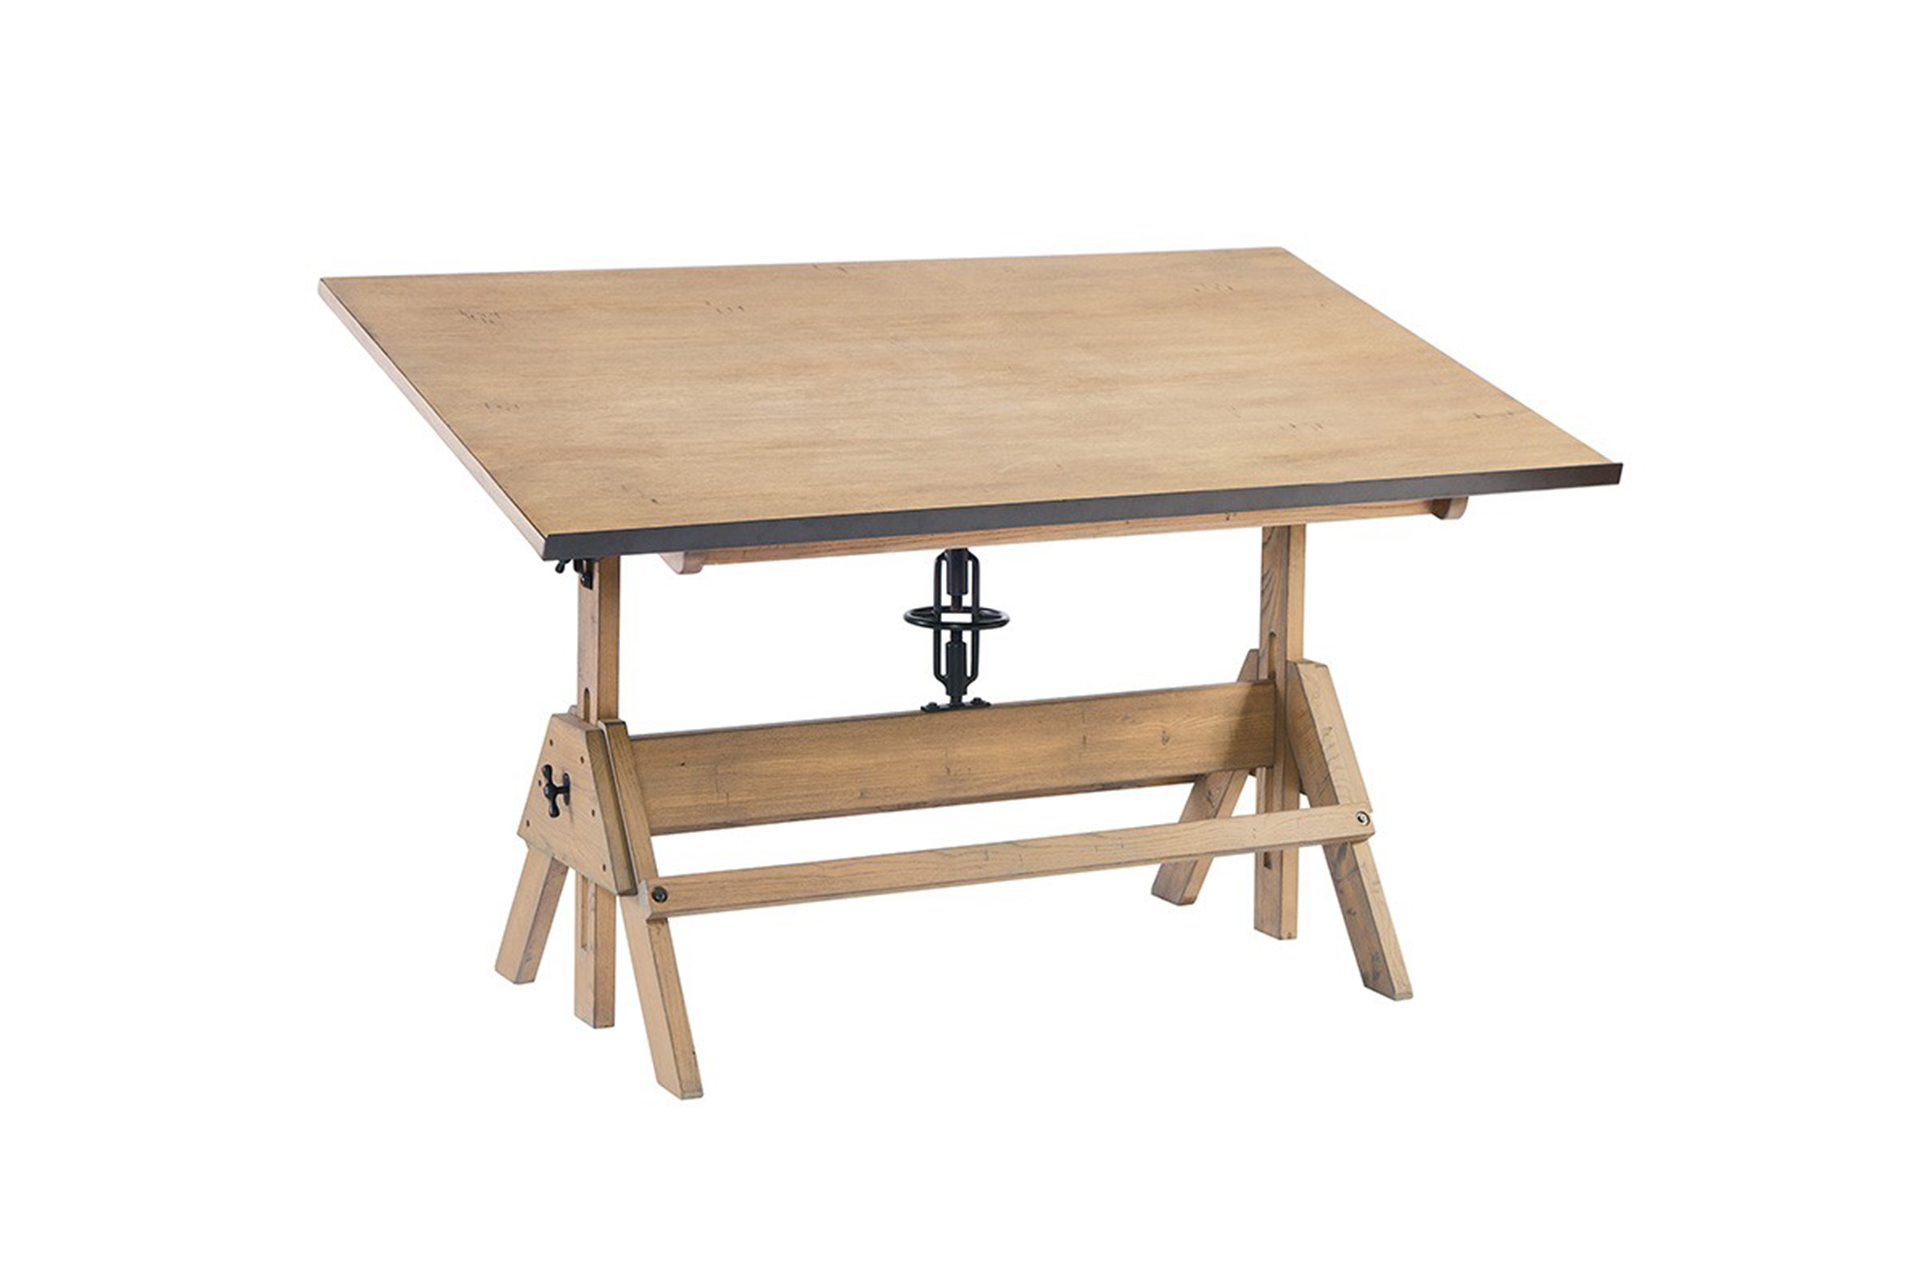 Merveilleux Magnolia Home Blueprint Drafting Table By Joanna Gaines (Qty: 1) Has Been  Successfully Added To Your Cart.